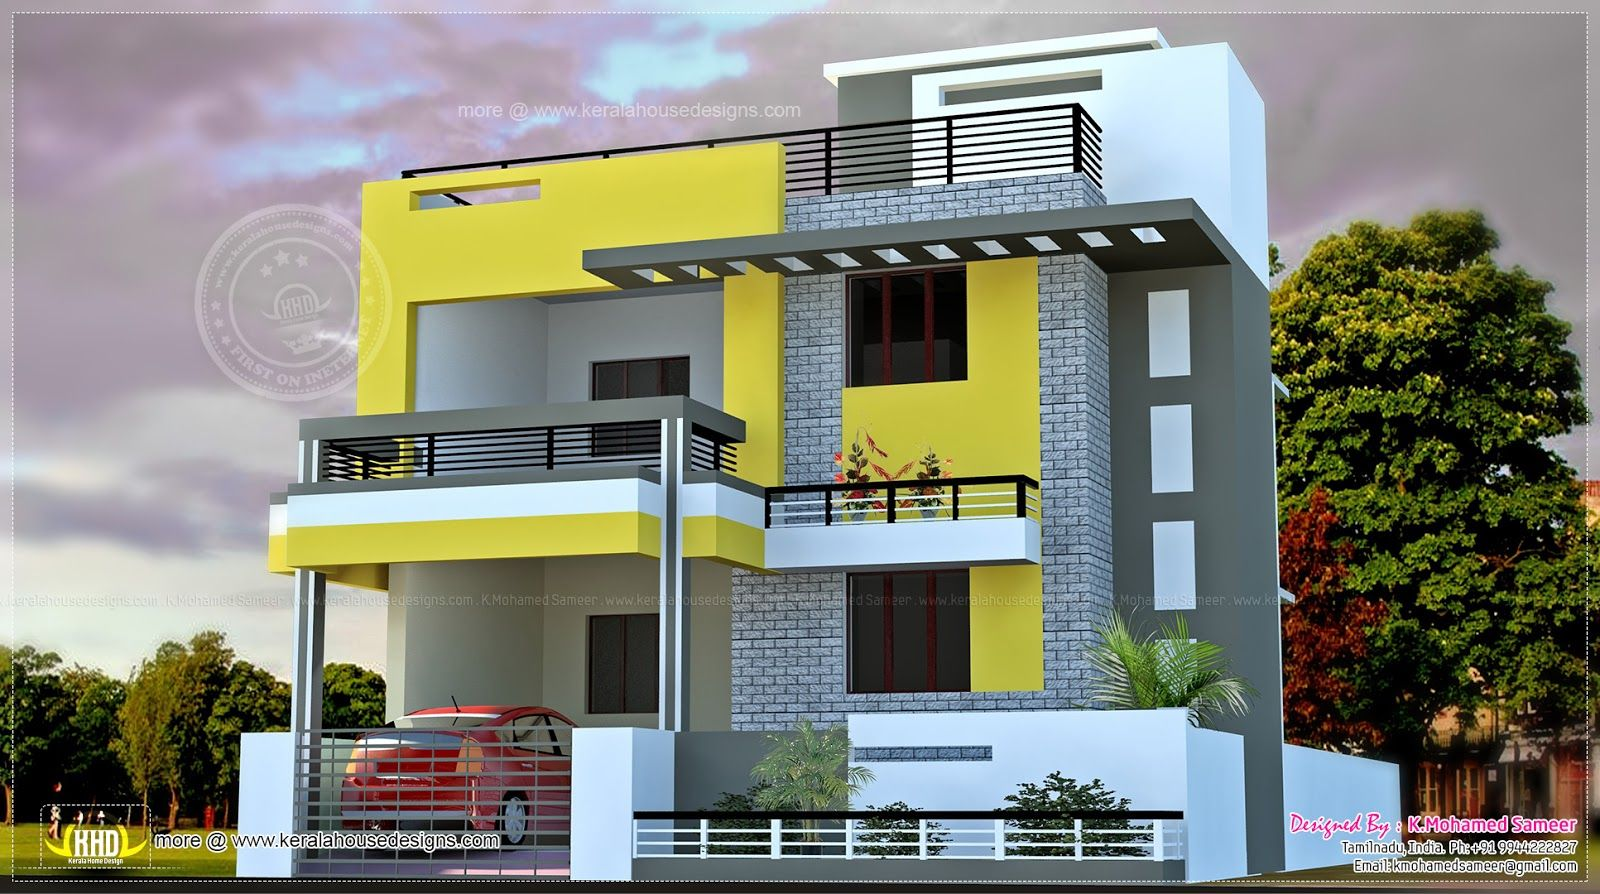 Elevations of residential buildings in indian photo for Elevation house plans